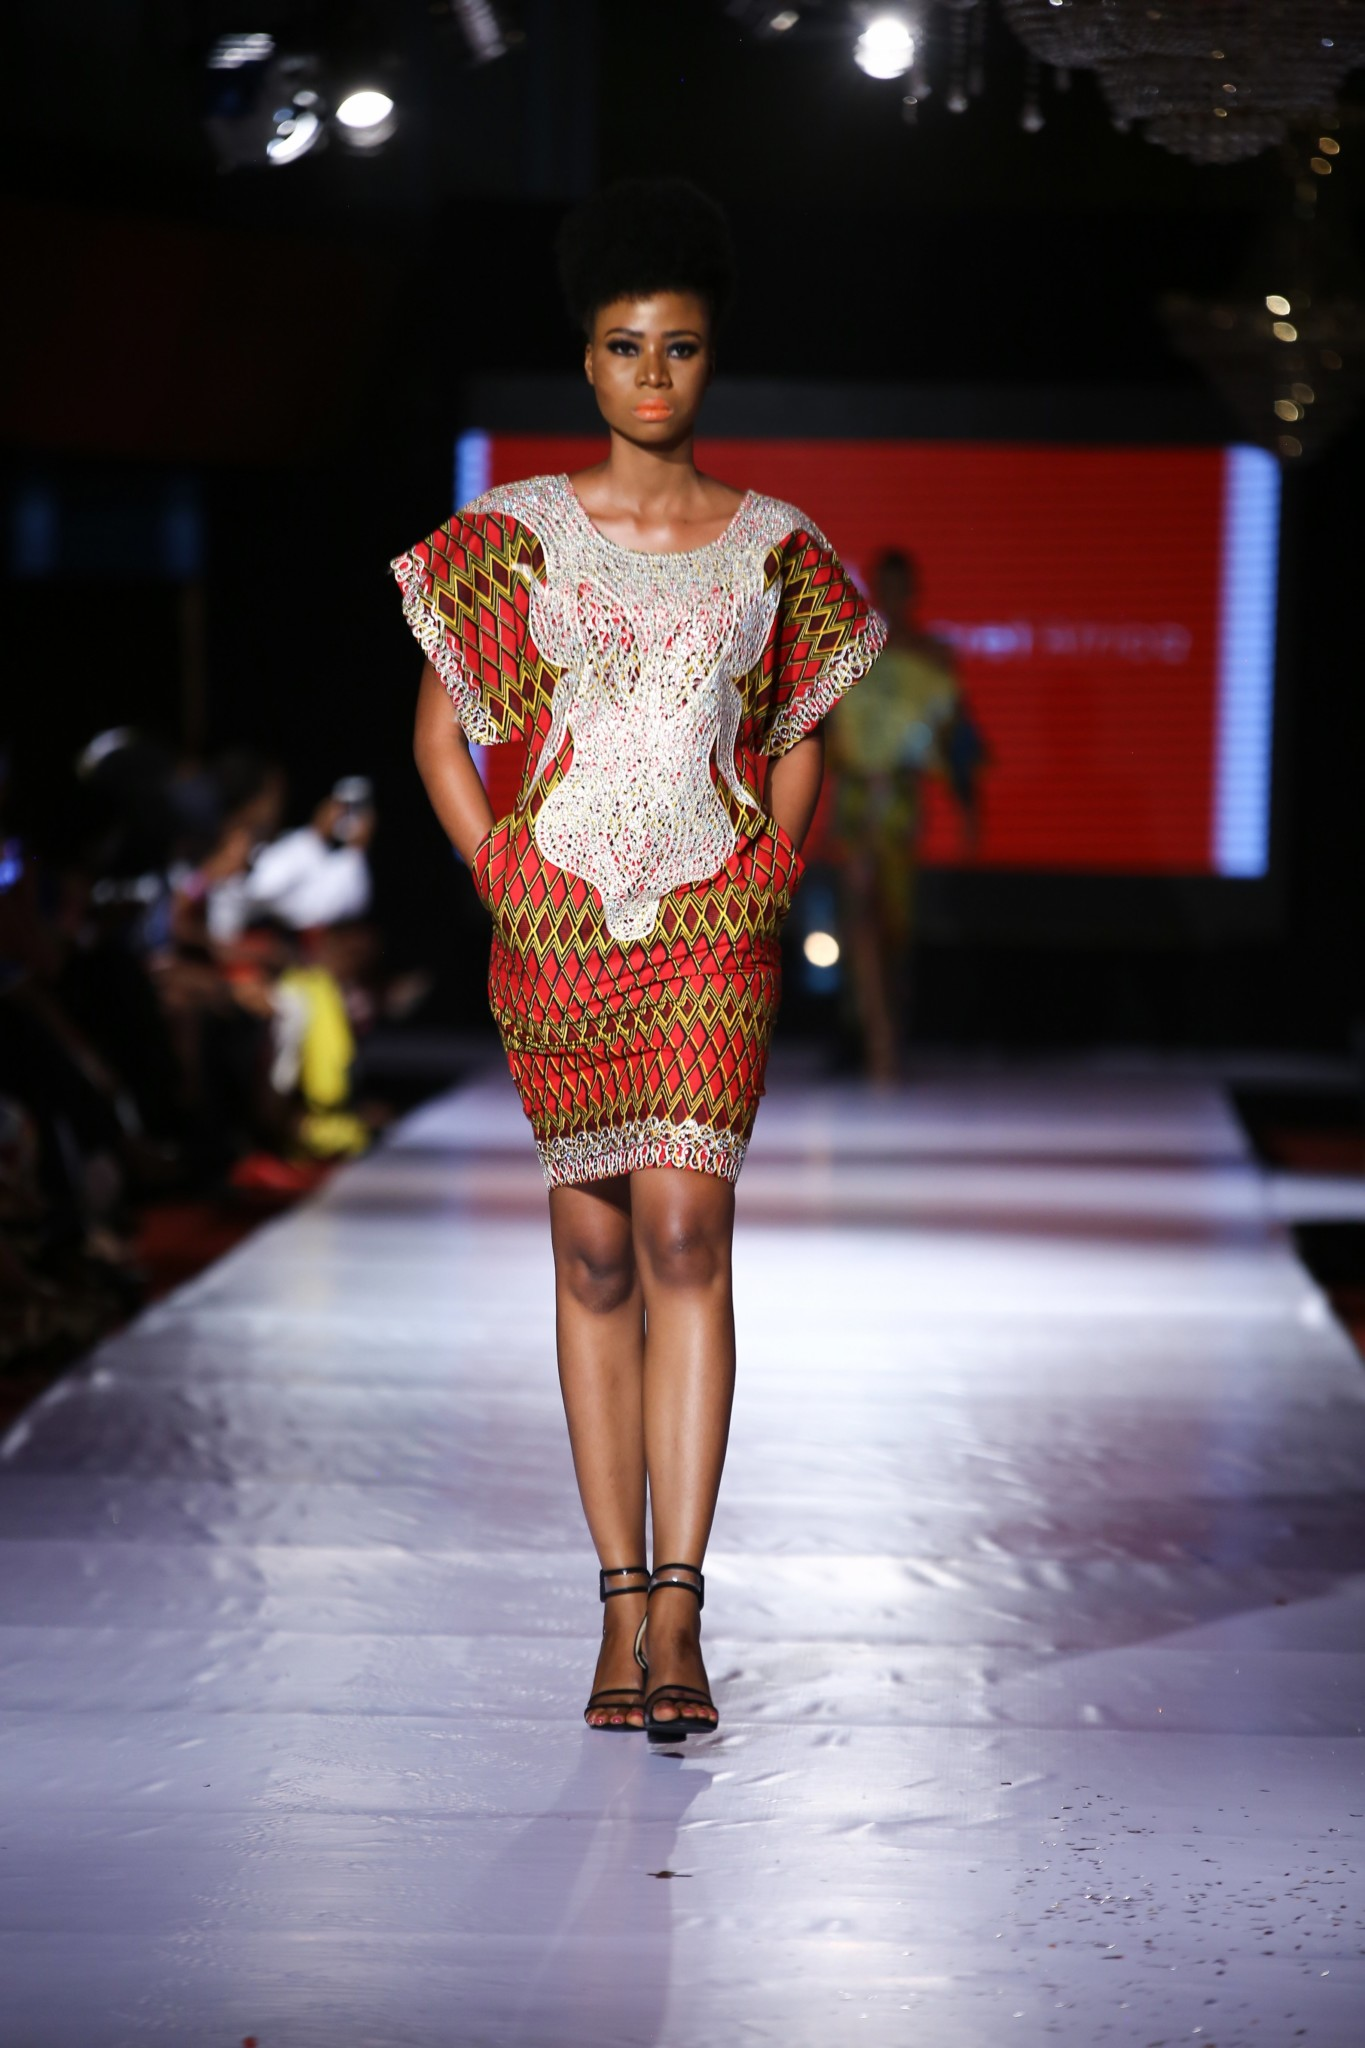 #AFWN17 | Africa Fashion Week Nigeria Day 2: Secrets Signature Africa